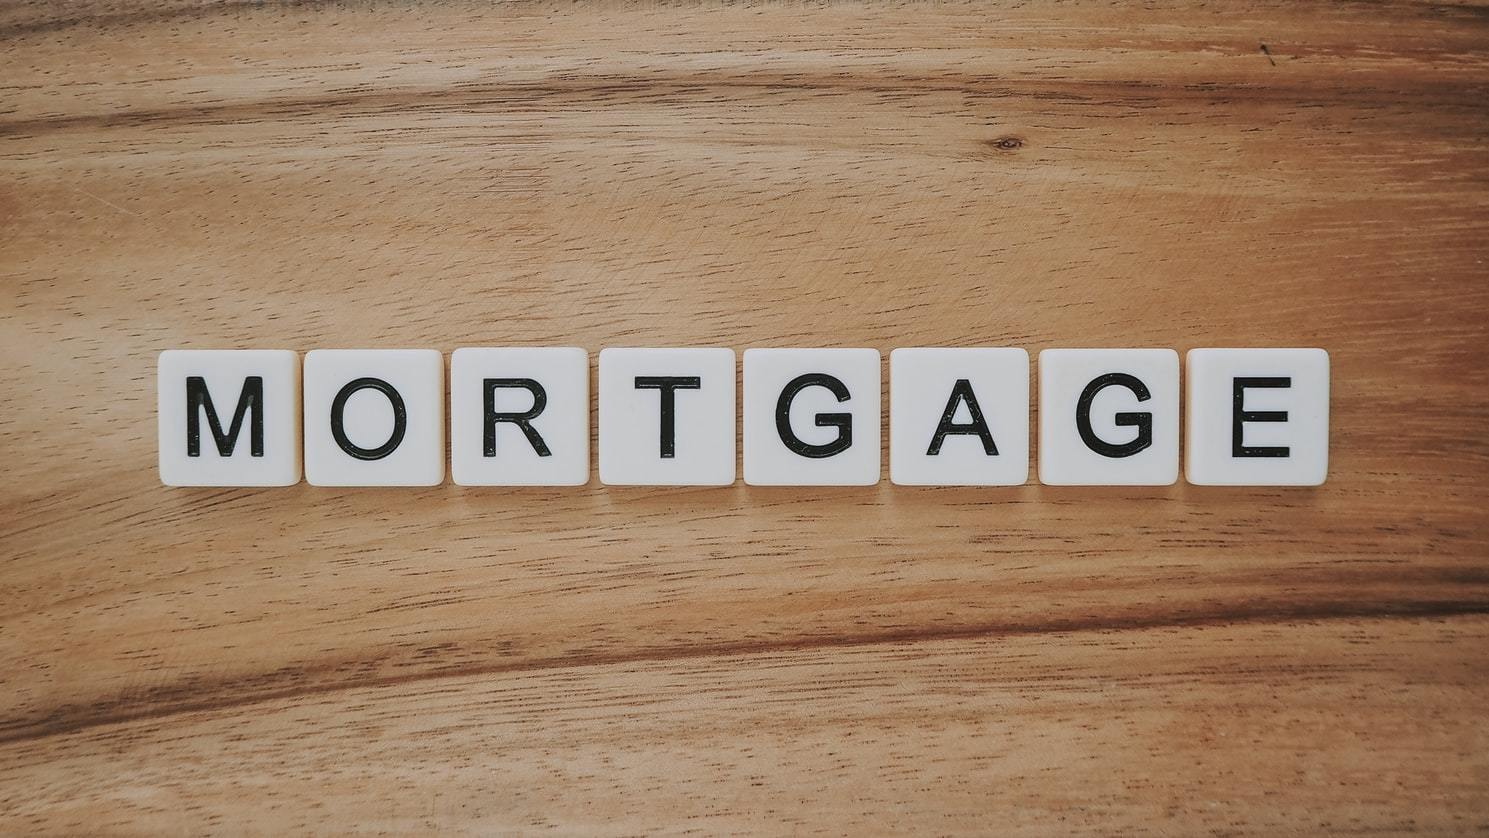 A complete guide to mortgages - everything you need to know